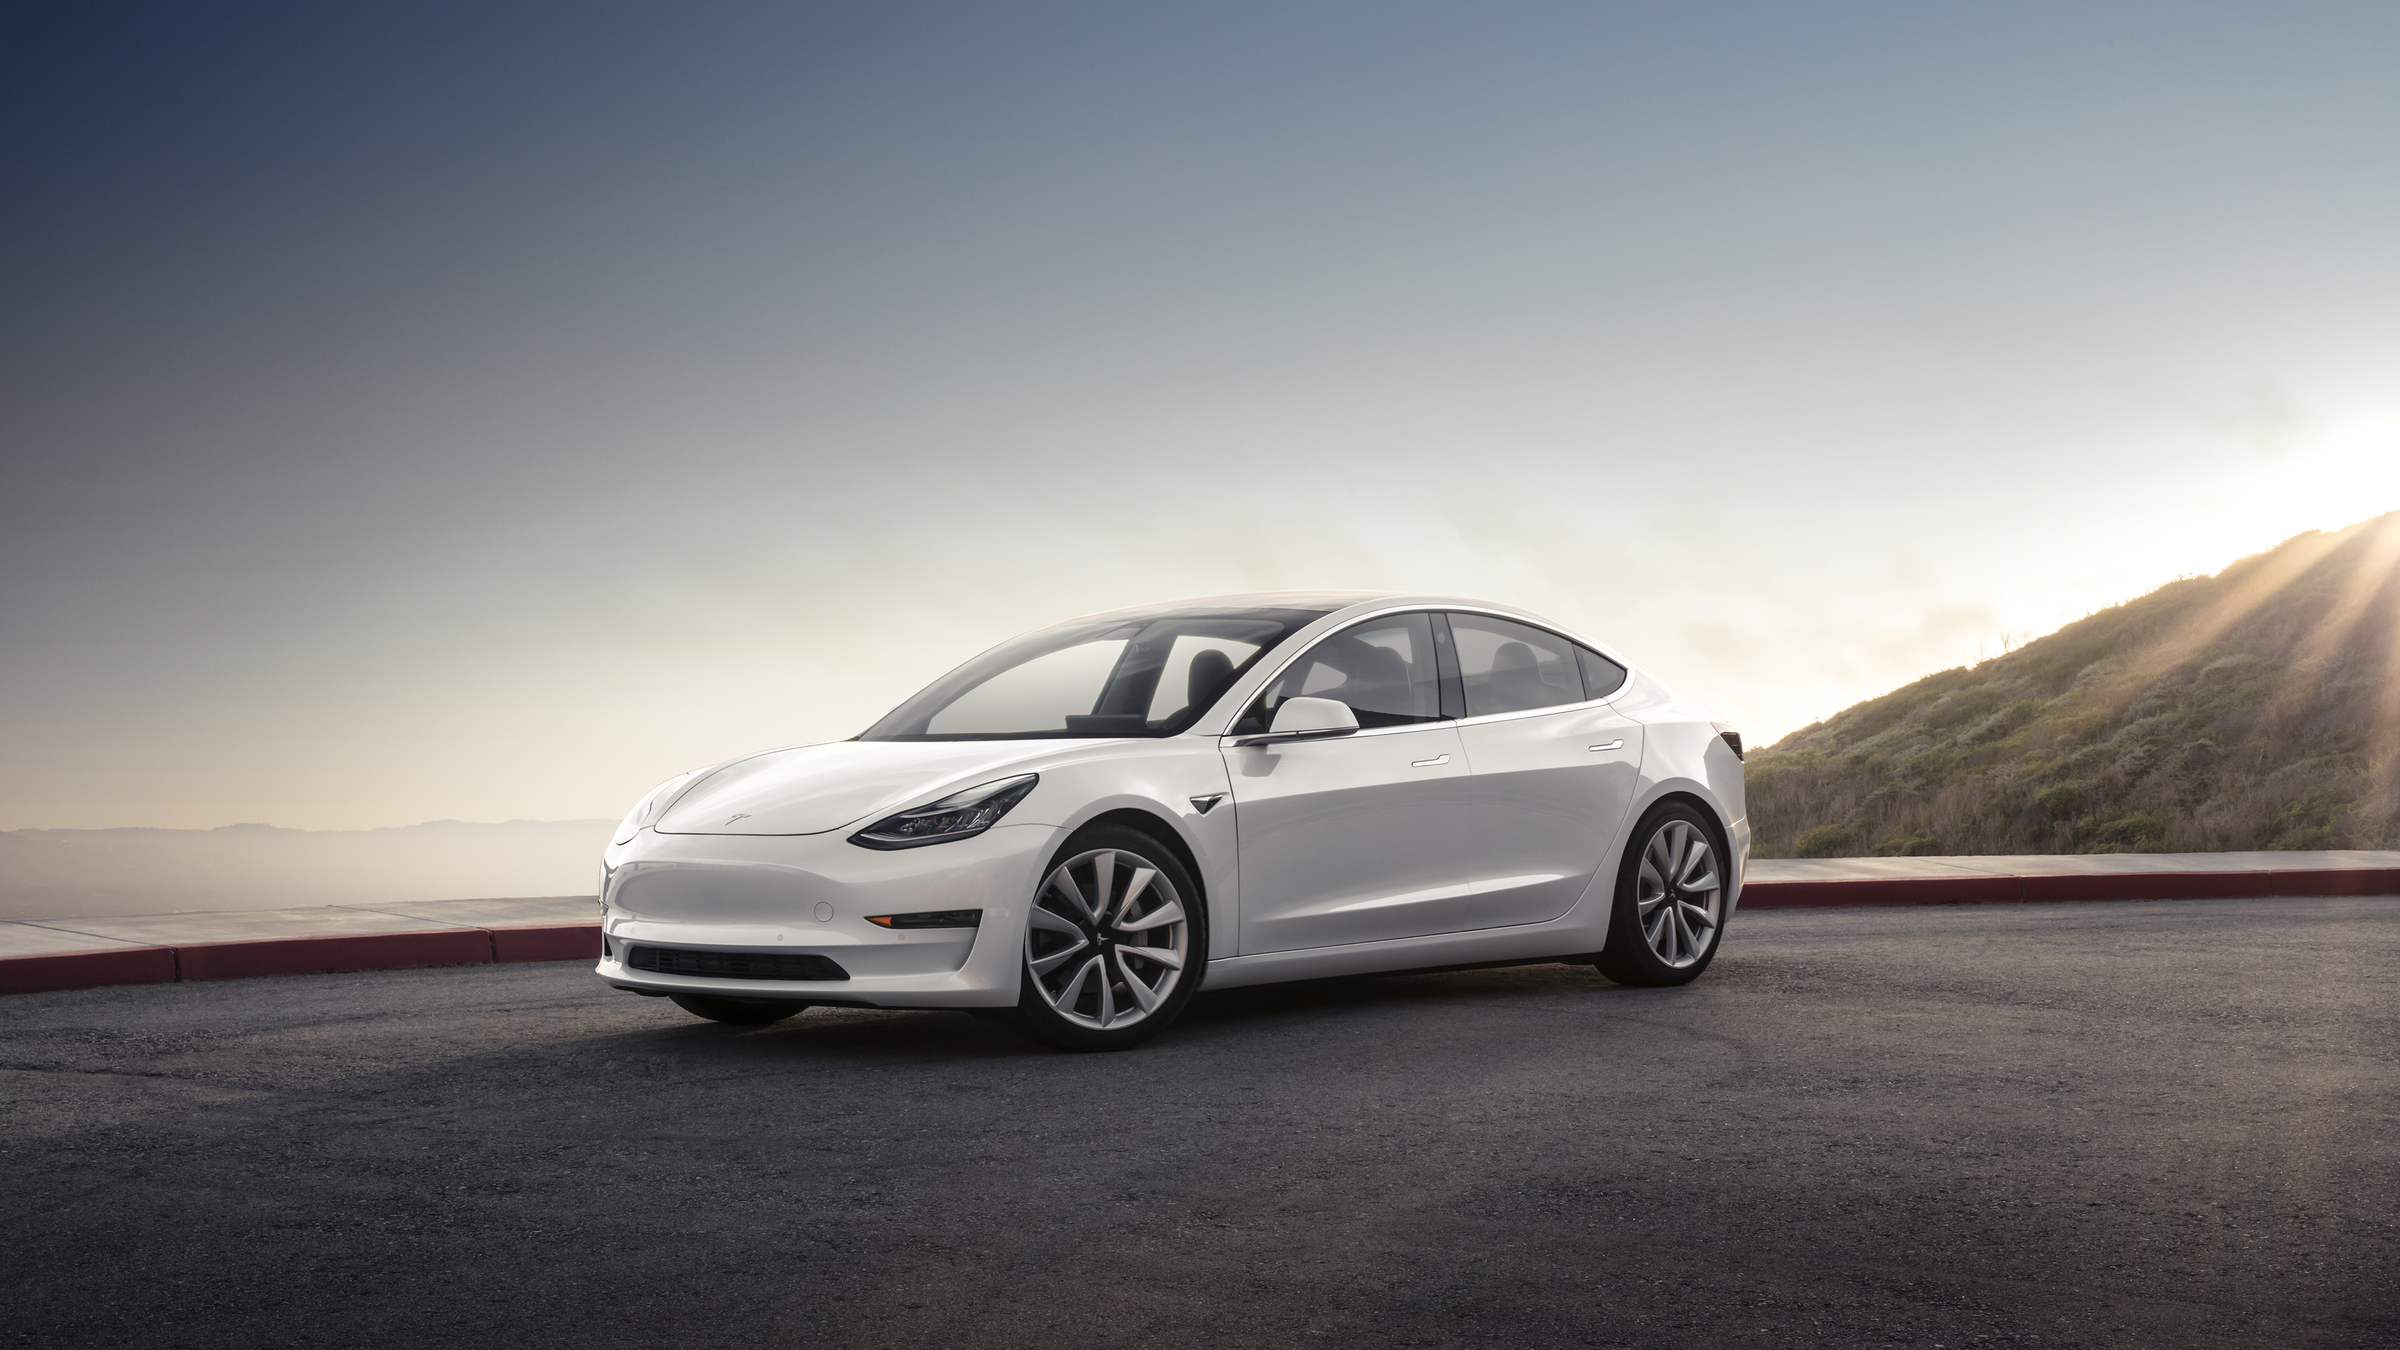 Tesla Model 3, Tesla Motors, Electric vehicle, Car, 2018 Tesla Model S, Tesla, , Electric car, Vehicle, Sedan, model 3 tesla, car, motor vehicle, vehicle, automotive design, mid size car, family car, rim, luxury vehicle, personal luxury car, automotive wheel system